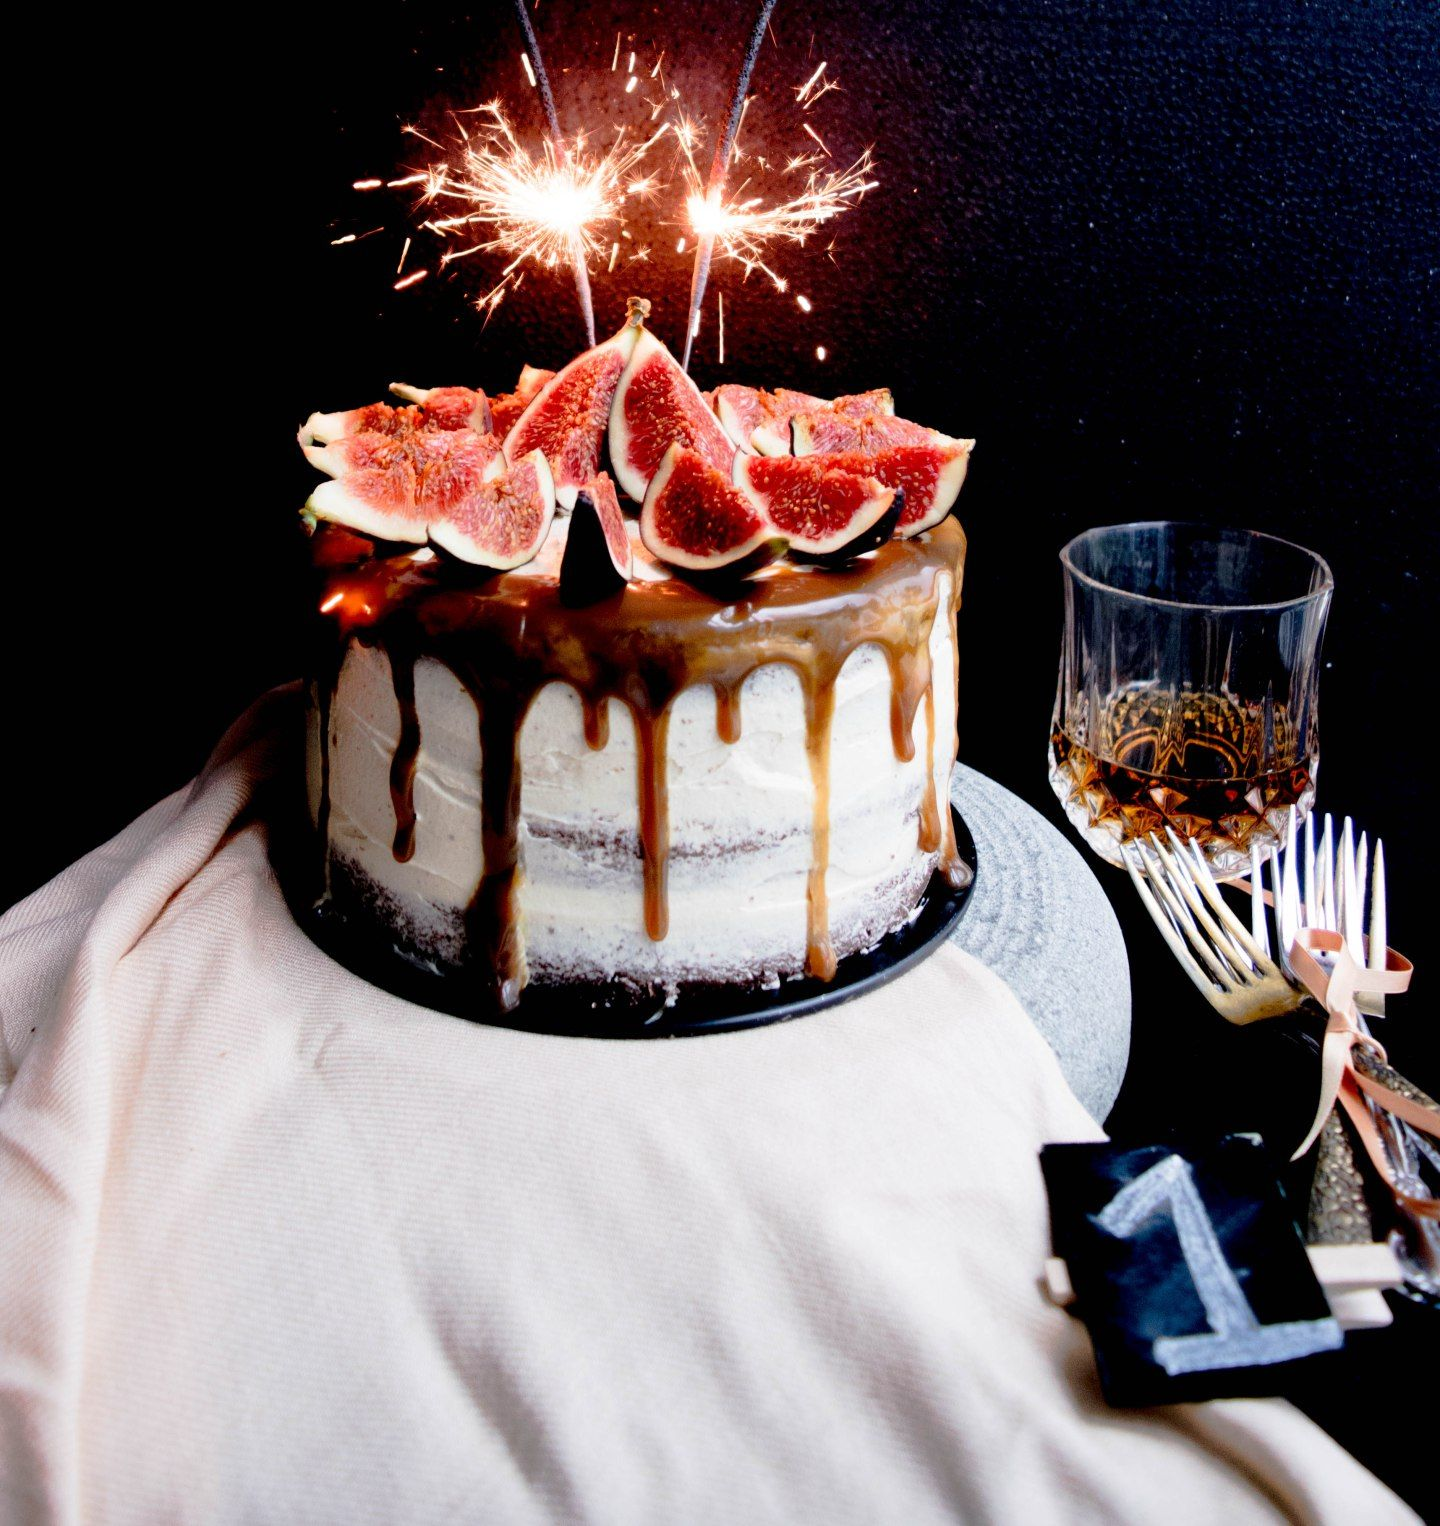 Chocolate honey whiskey cake with figs and salted